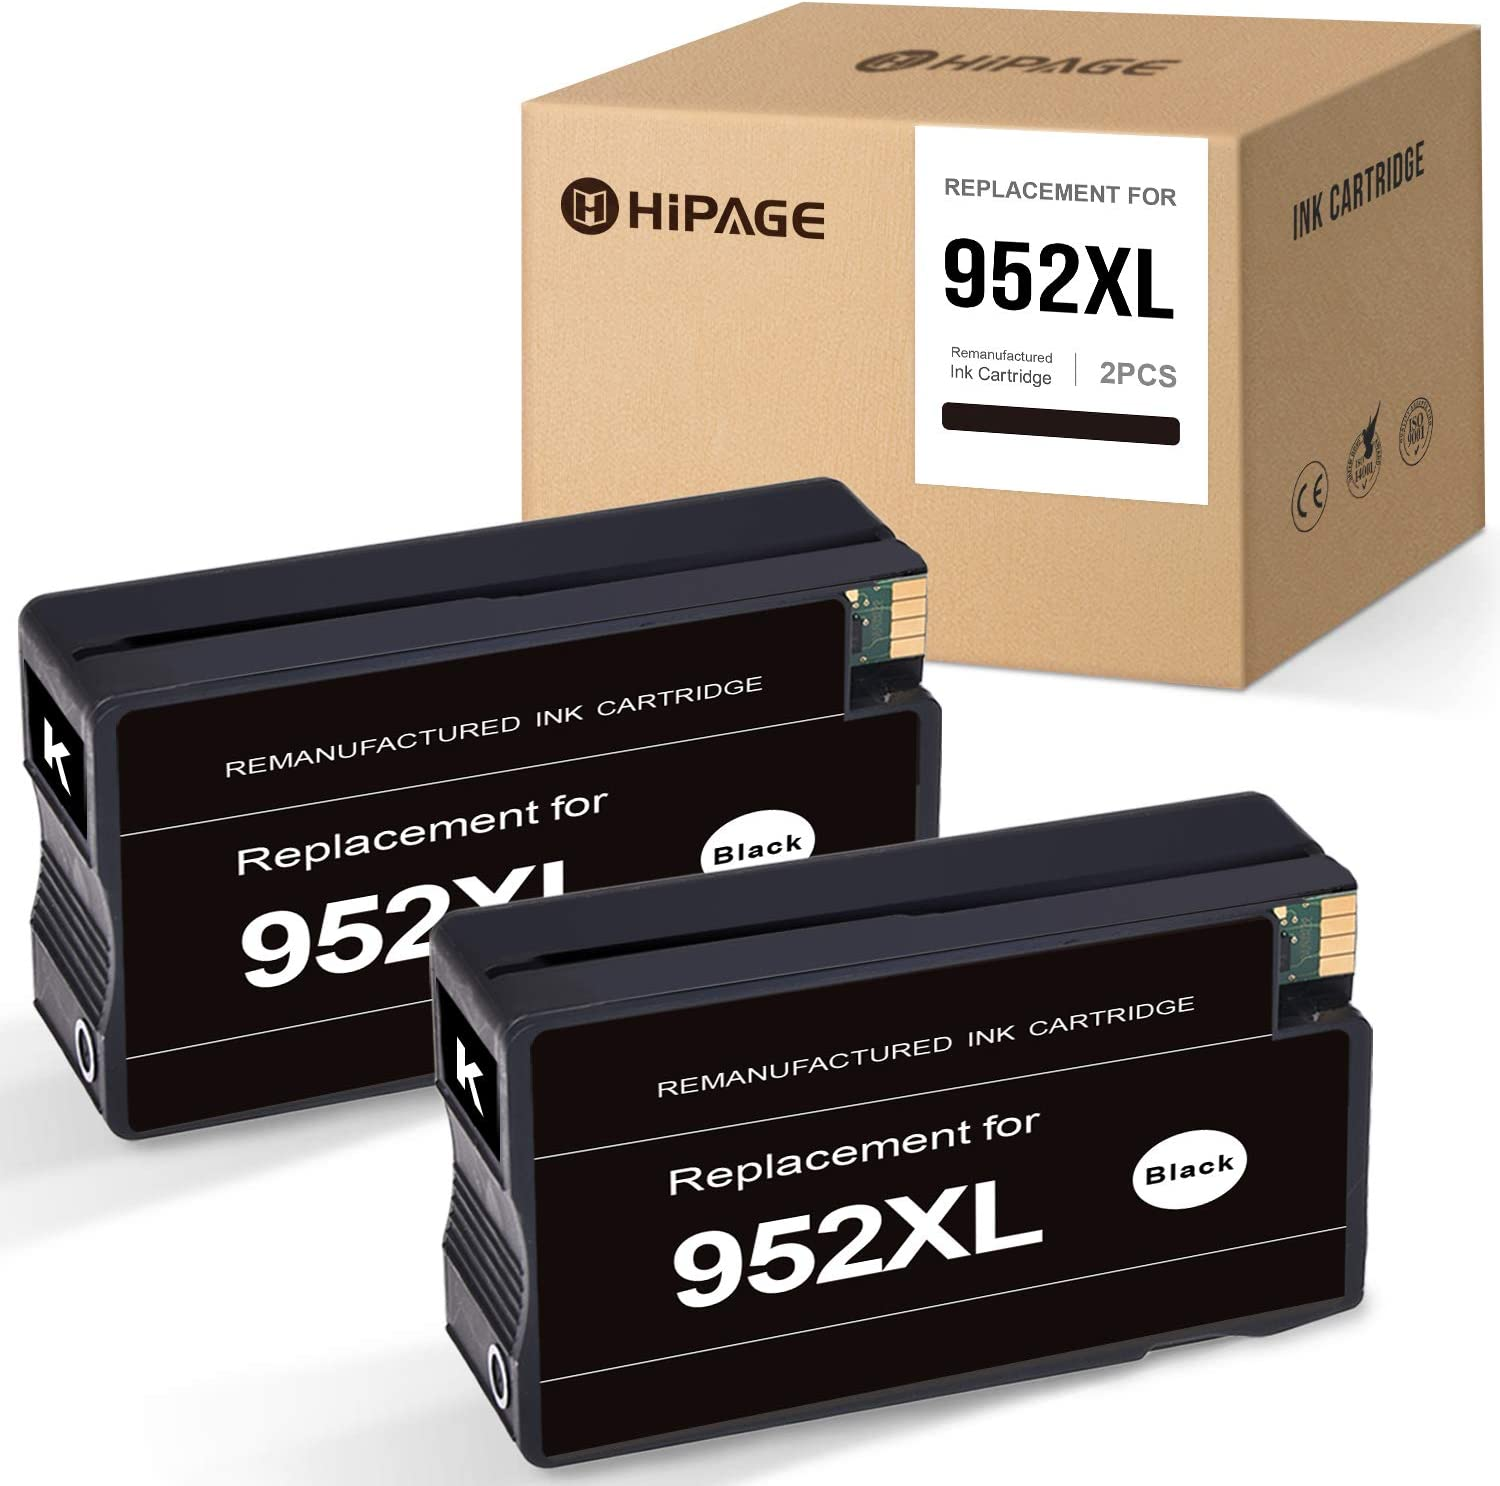 HIPAGE Remanufactured Ink Cartridge Replacement for HP 952XL 952 XL High Yield Combo Pack for OfficeJet Pro 8710 8720 8702 7740 8715 8740 8210 7720 8730 8725 8216 (Black, 2-Pack)